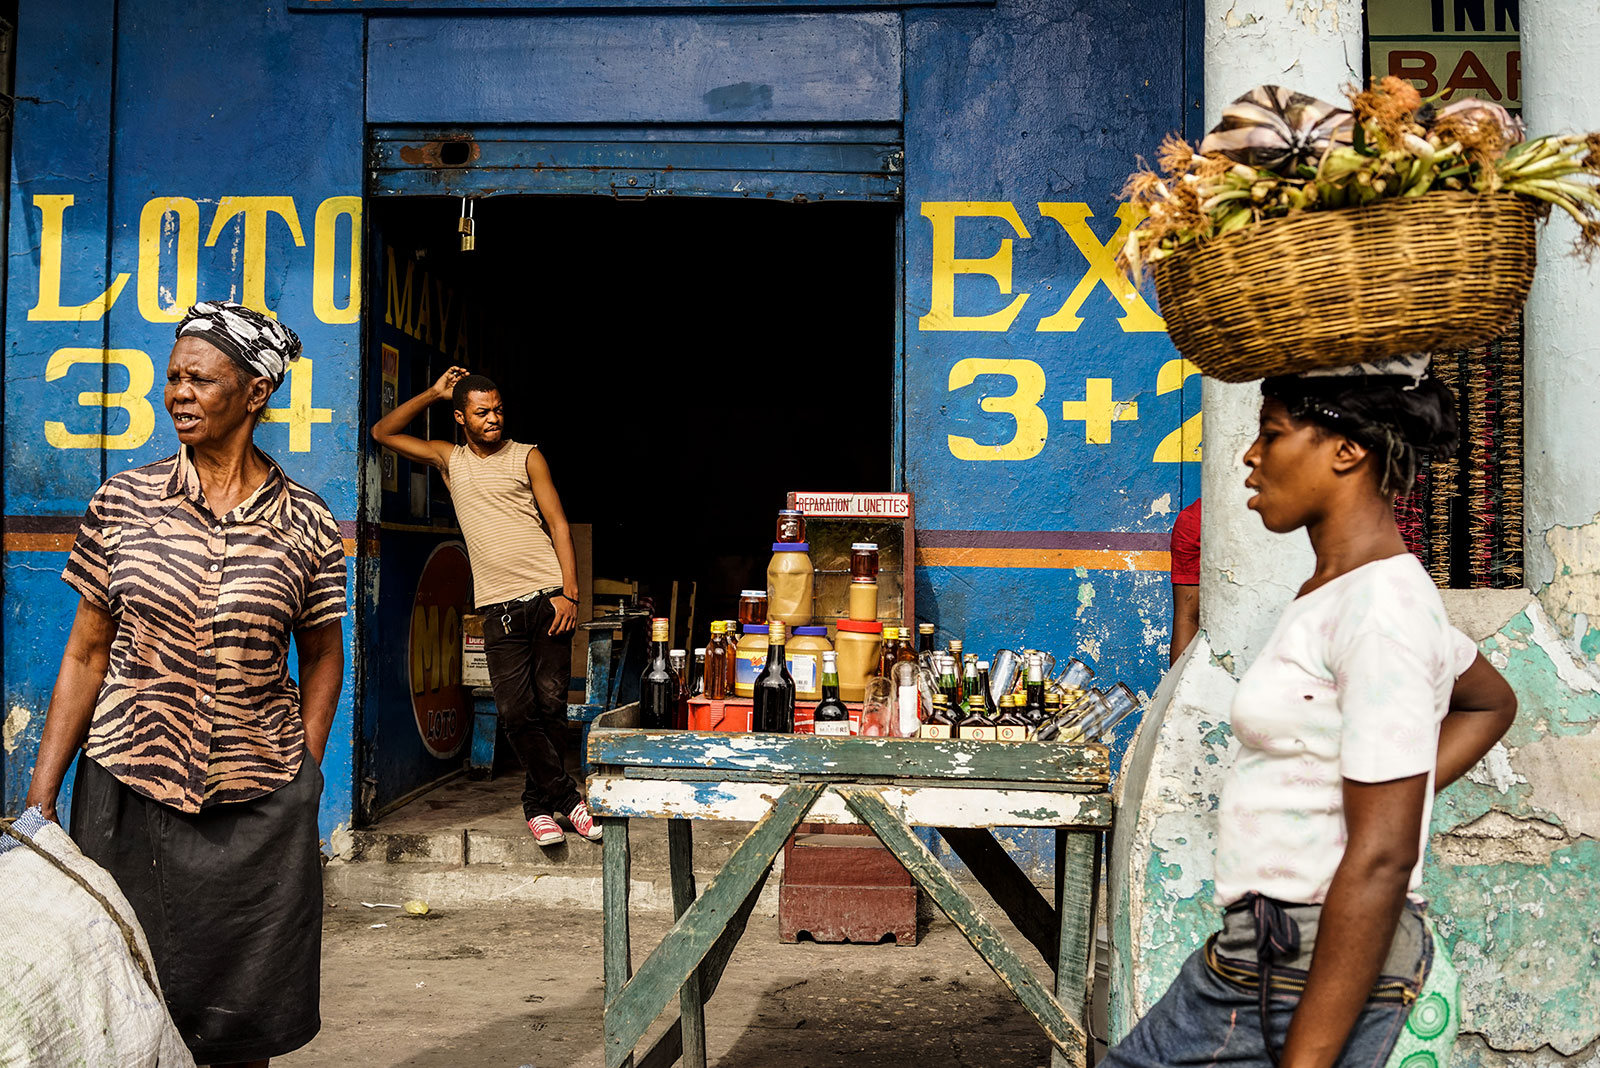 Street photography in Haiti photographed by Brian Smith with Sony a7R camera